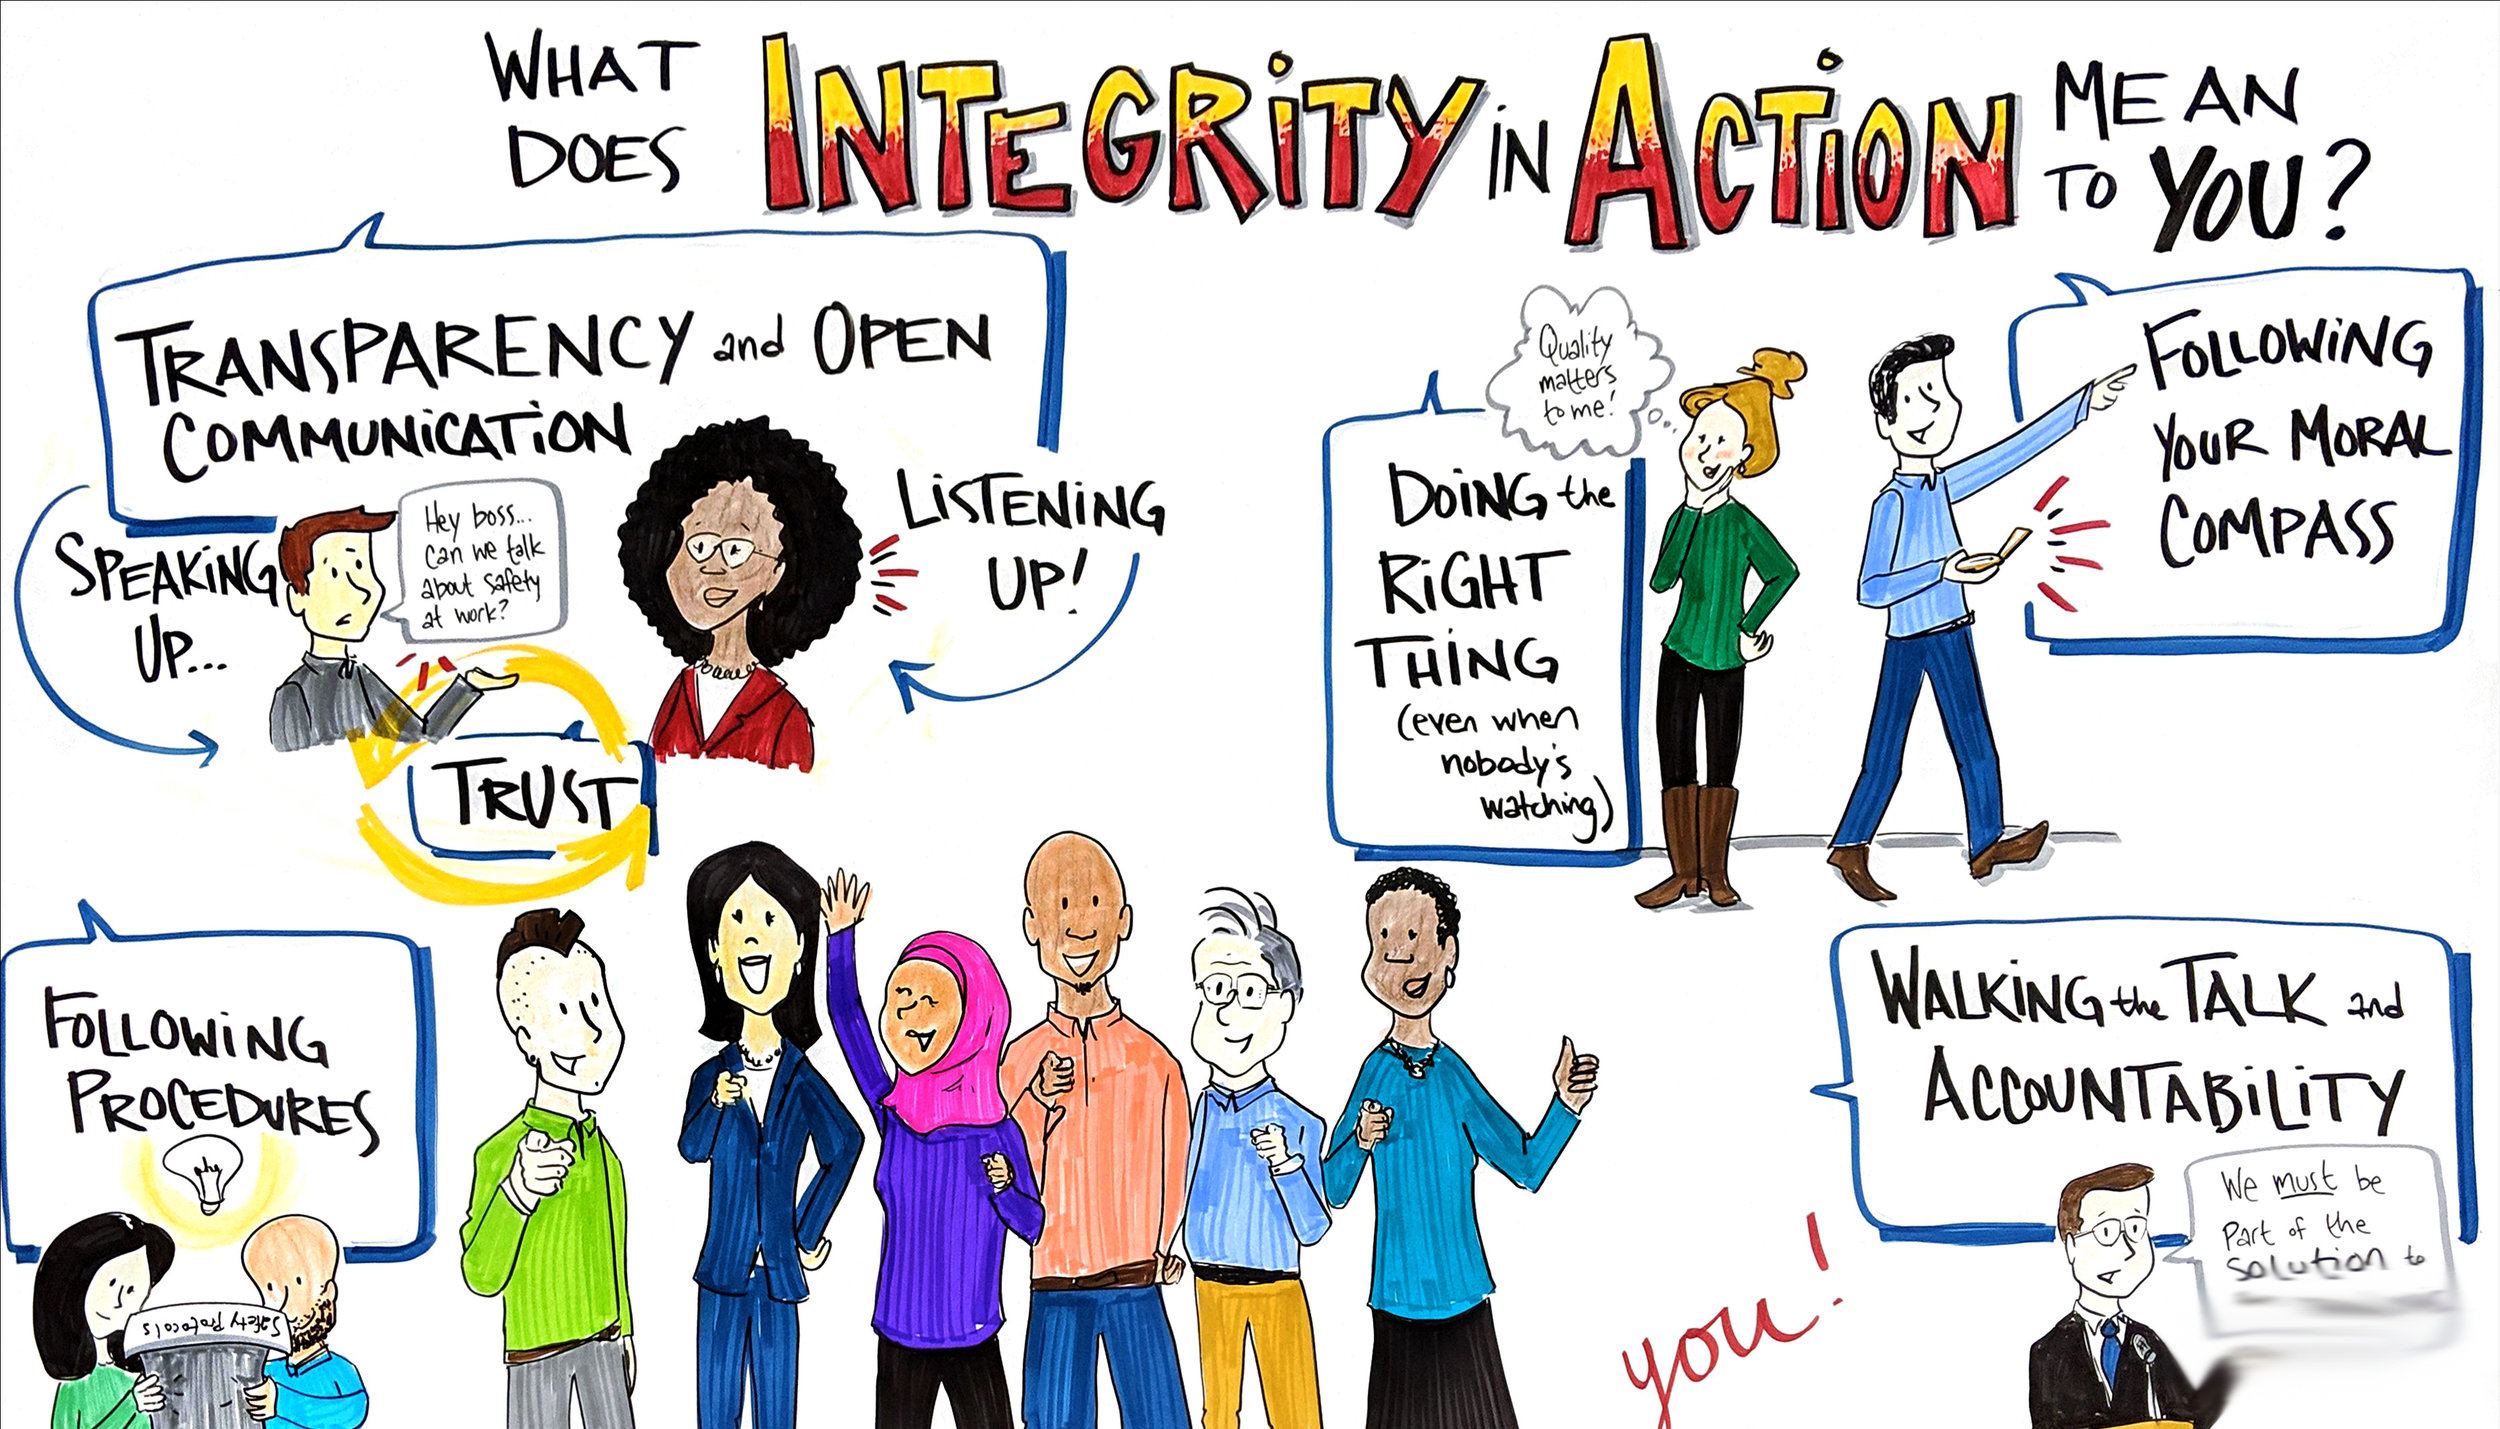 Stamford, Connecticut  for the kickoff of an Ethics Week focusing on integrity in action. This is part of a synthesis of survey themes from employees that I created ahead of time for the client. Major kudos to the team there for their creativity and for facilitating the conversation that inspired this email!